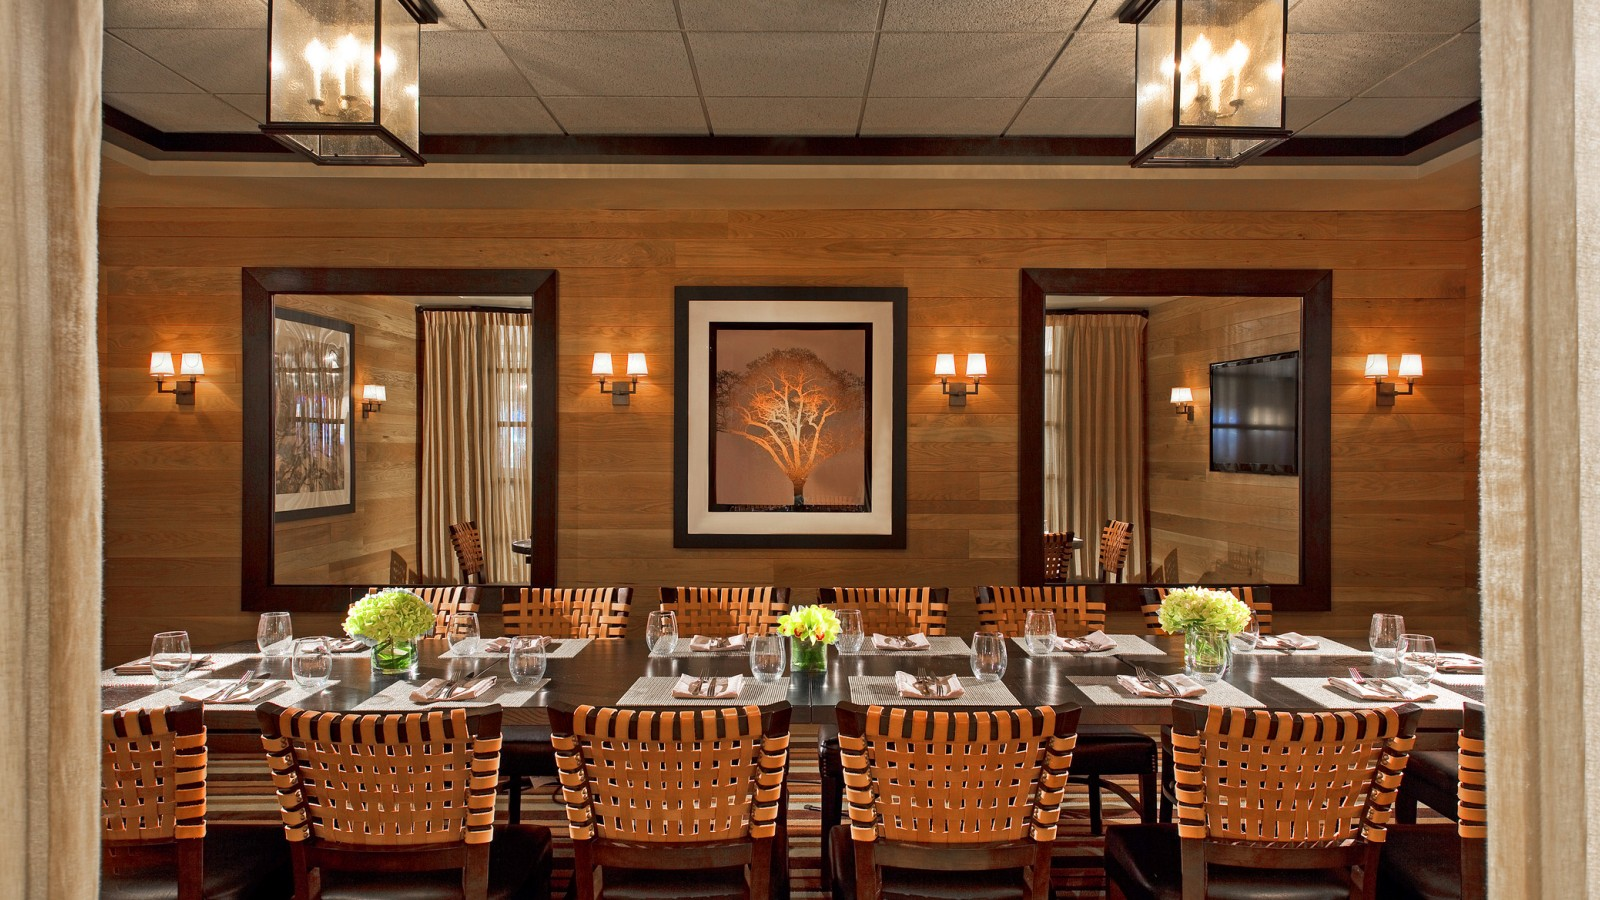 The Westin Oaks Houston at The Galleria - Houston Meeting Rooms - White Oak Kitchen and Drinks